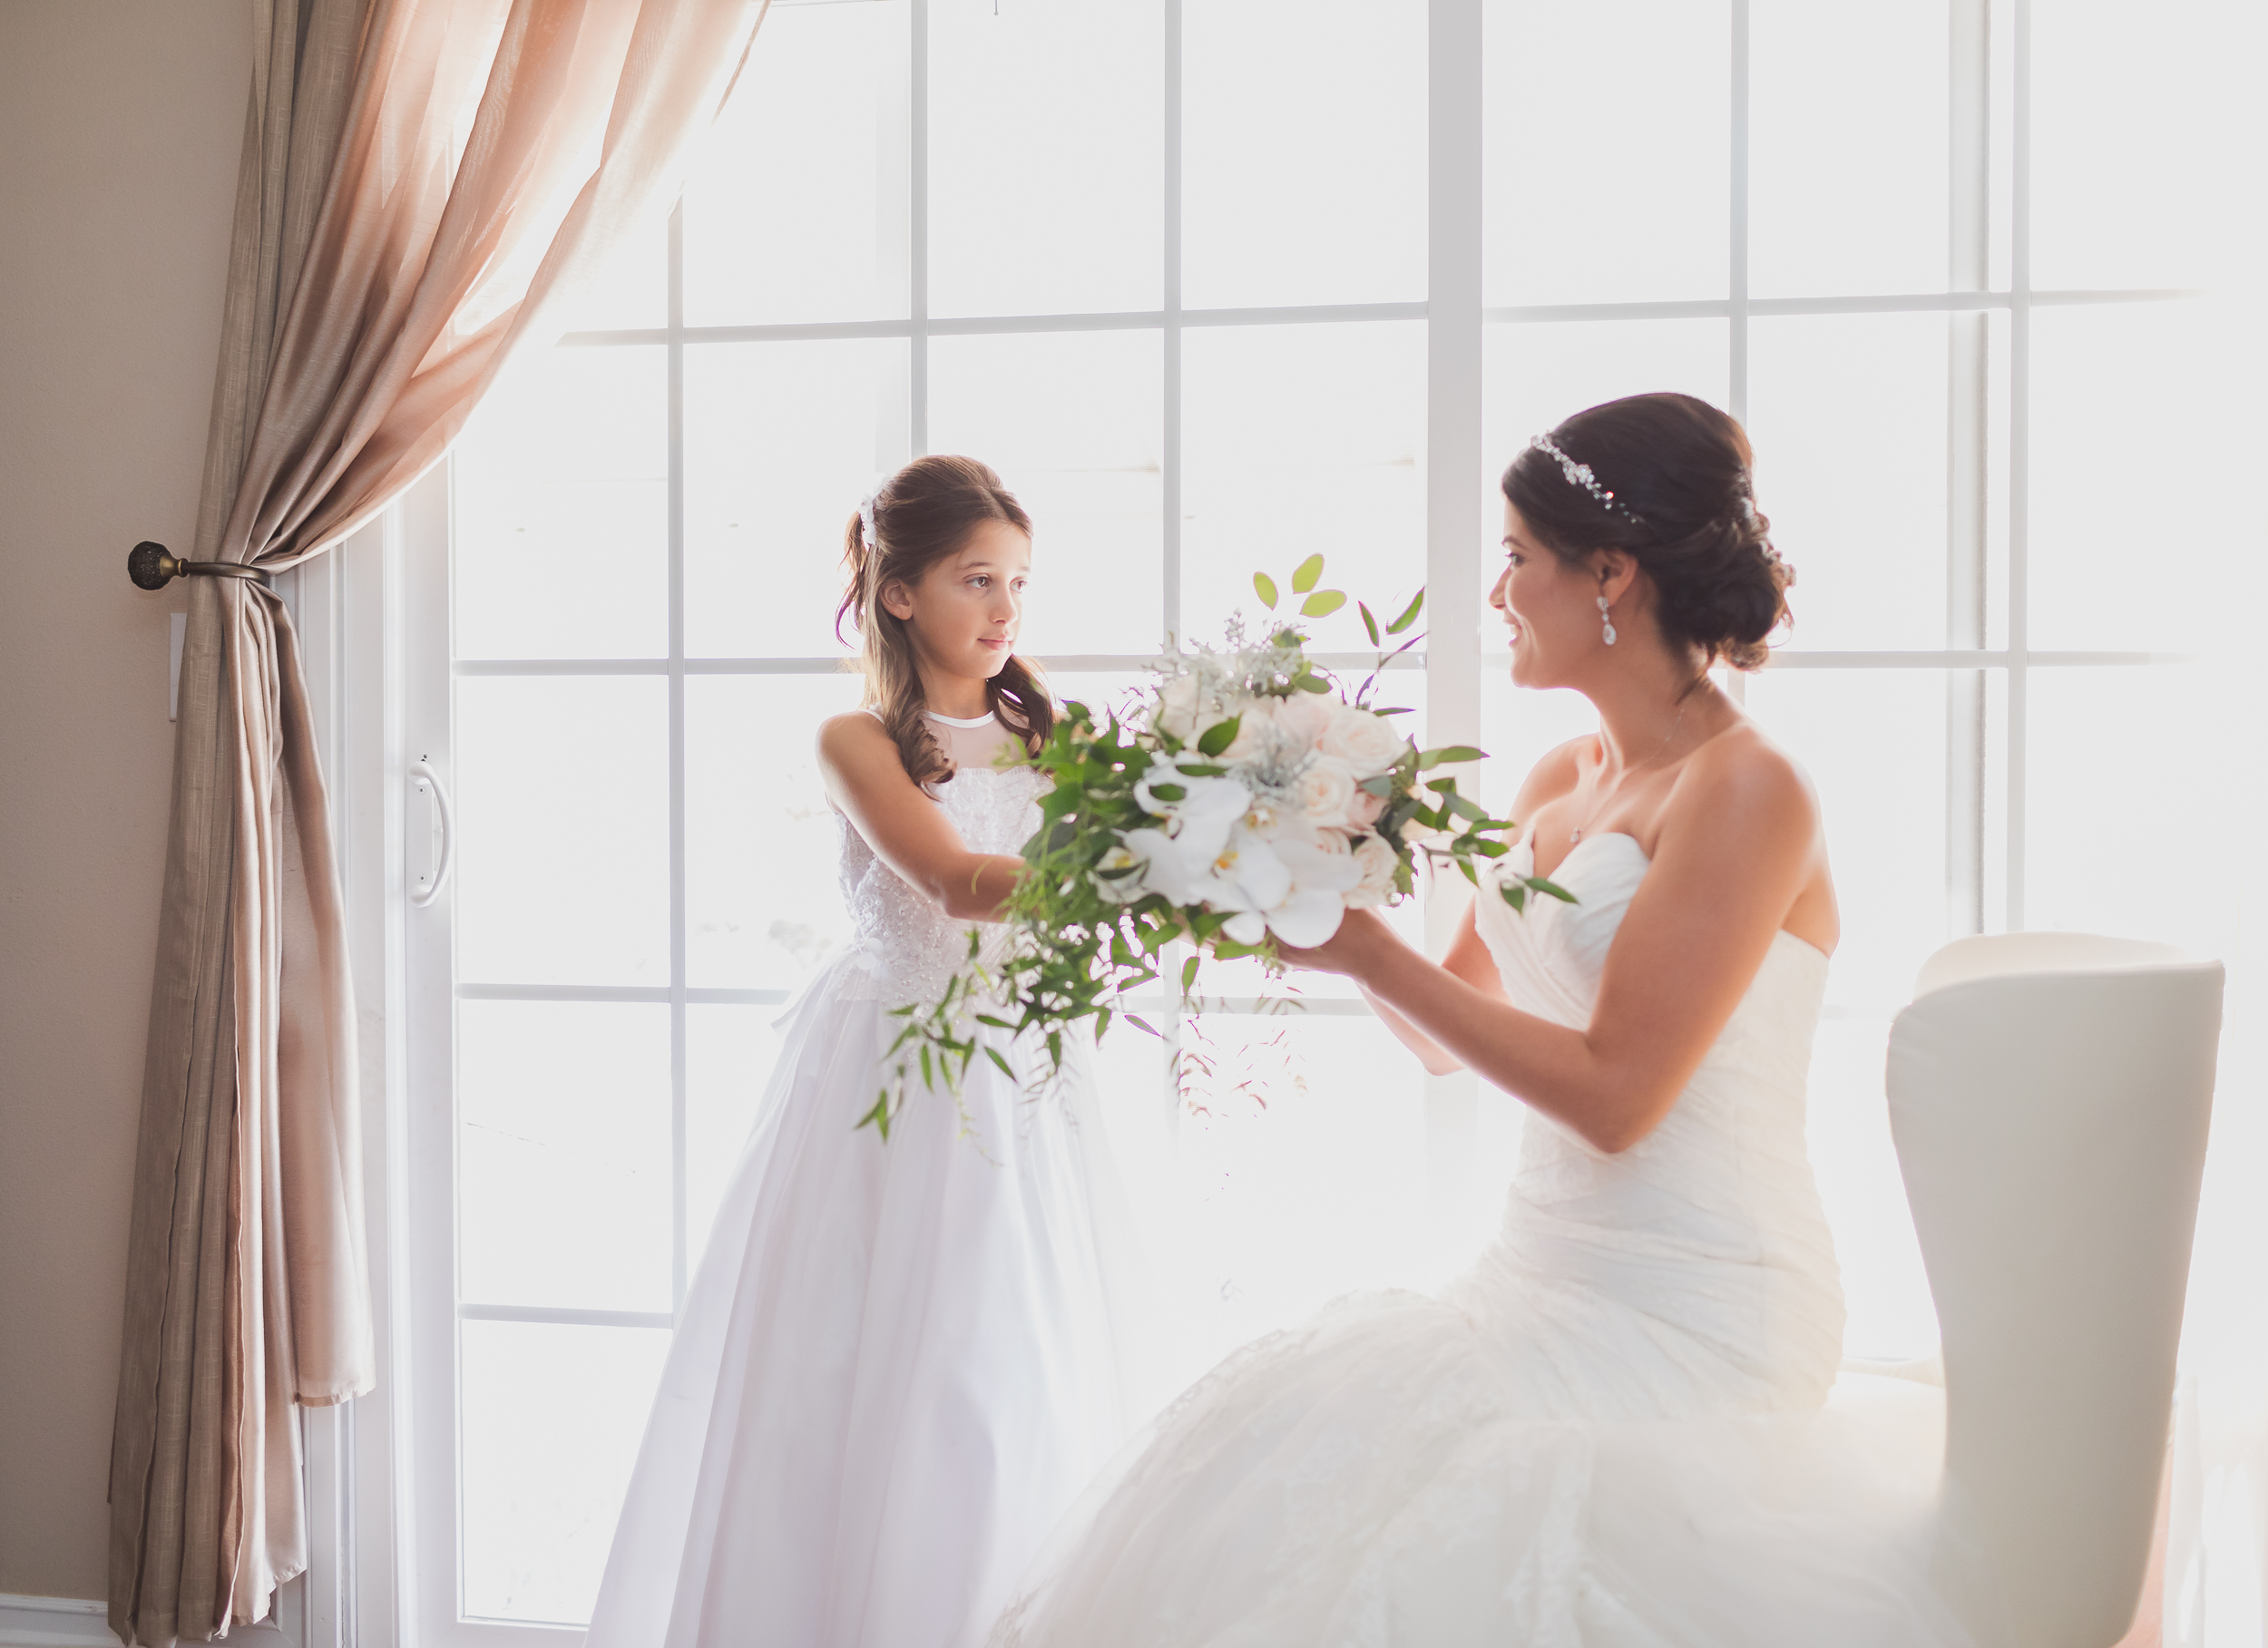 Mother Daughter Getting Ready by the Window Wedding Photography Inspiration.jpg